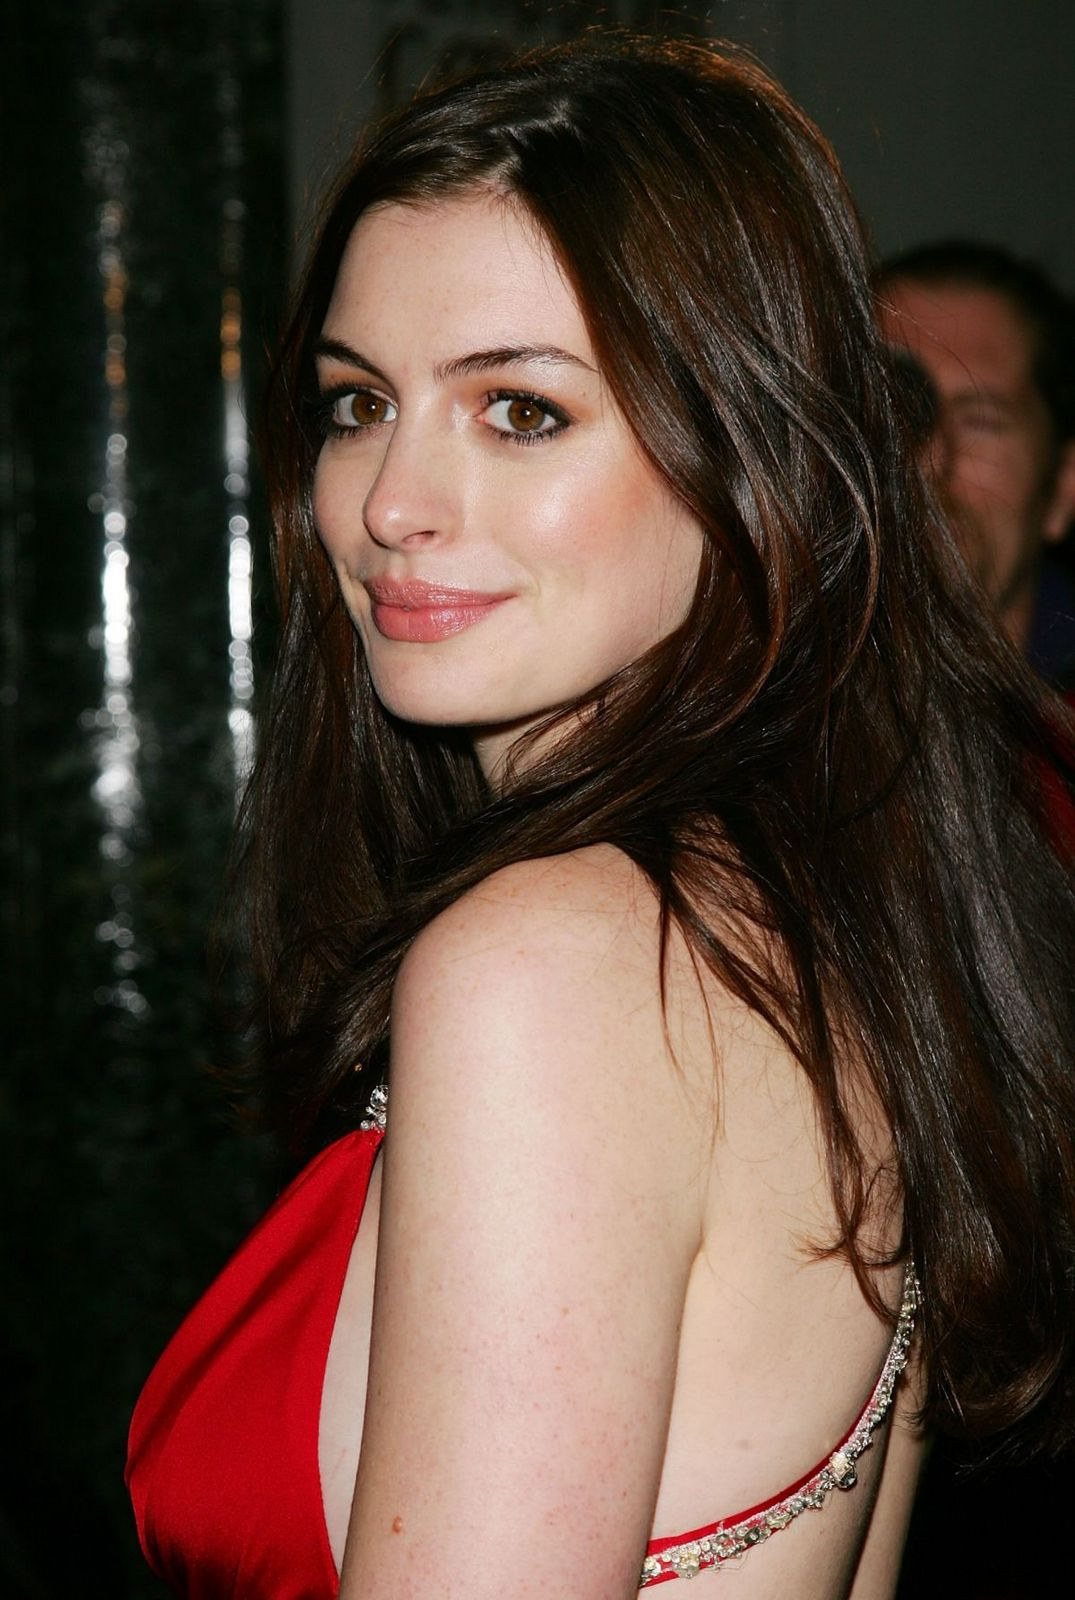 Celebrity Anne Hathaway naked (72 photos), Ass, Is a cute, Boobs, cleavage 2018